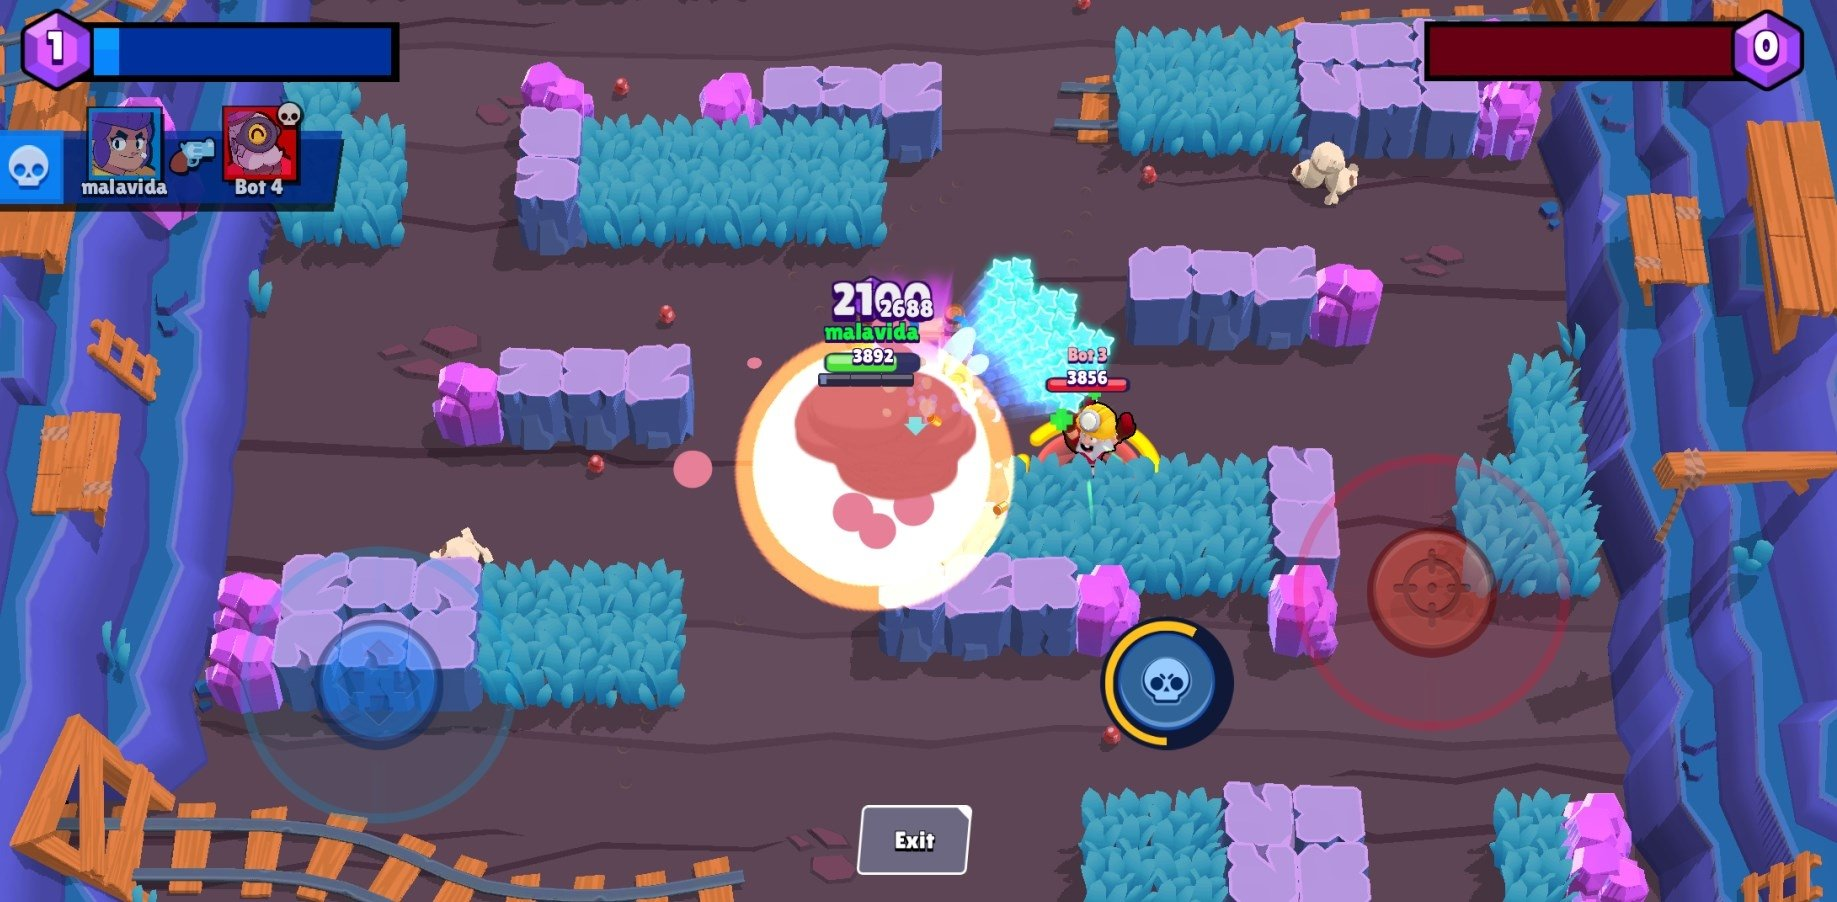 Null's Brawl 19 111 - Download for Android APK Free